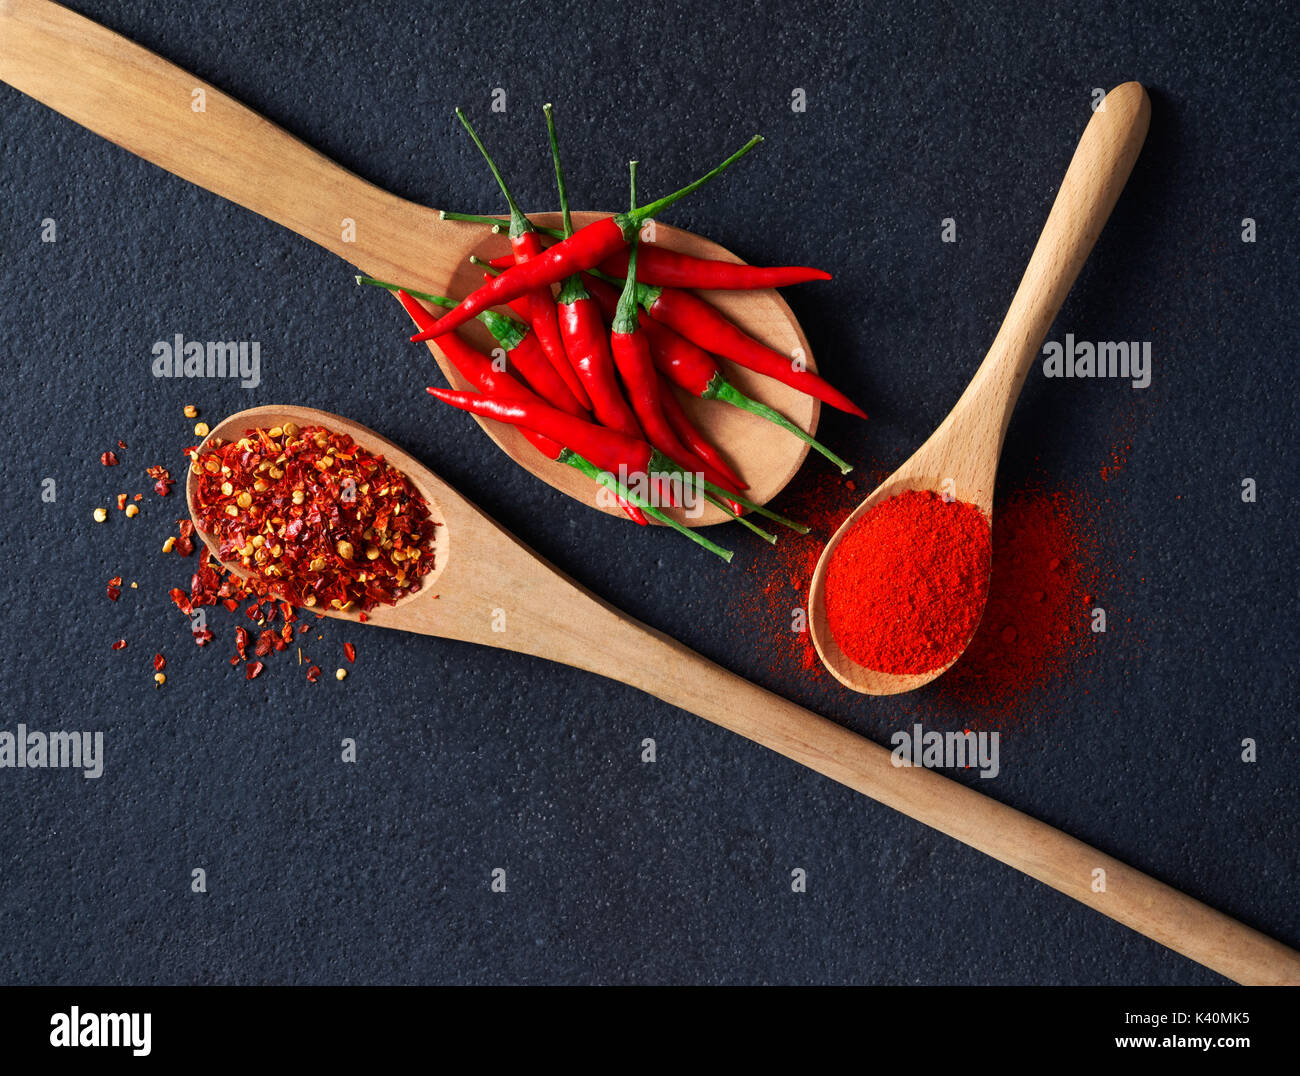 Wooden spoon filled with Chili, Red Pepper Flakes and Chili Powder - Stock Image